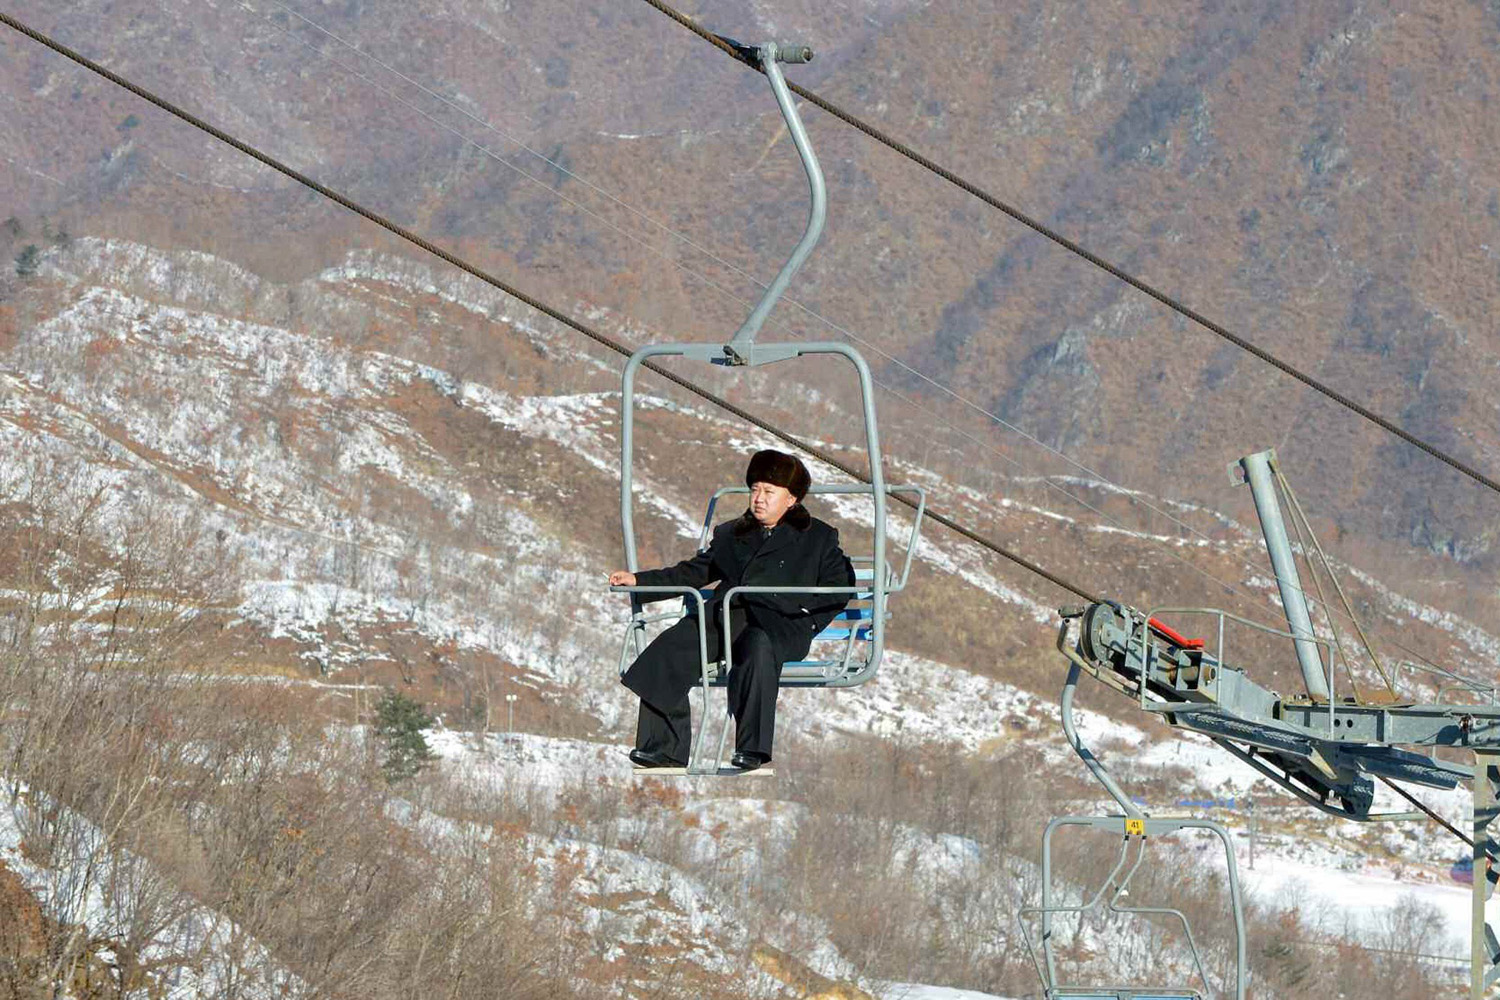 North Korean leader Kim Jong Un sits on a ski lift during a visit to a newly built ski resort in the Masik Pass region, in this undated picture published in the North Korean newspaper Rodong Sinmun, and released by Yonhap on Dec. 31, 2013.